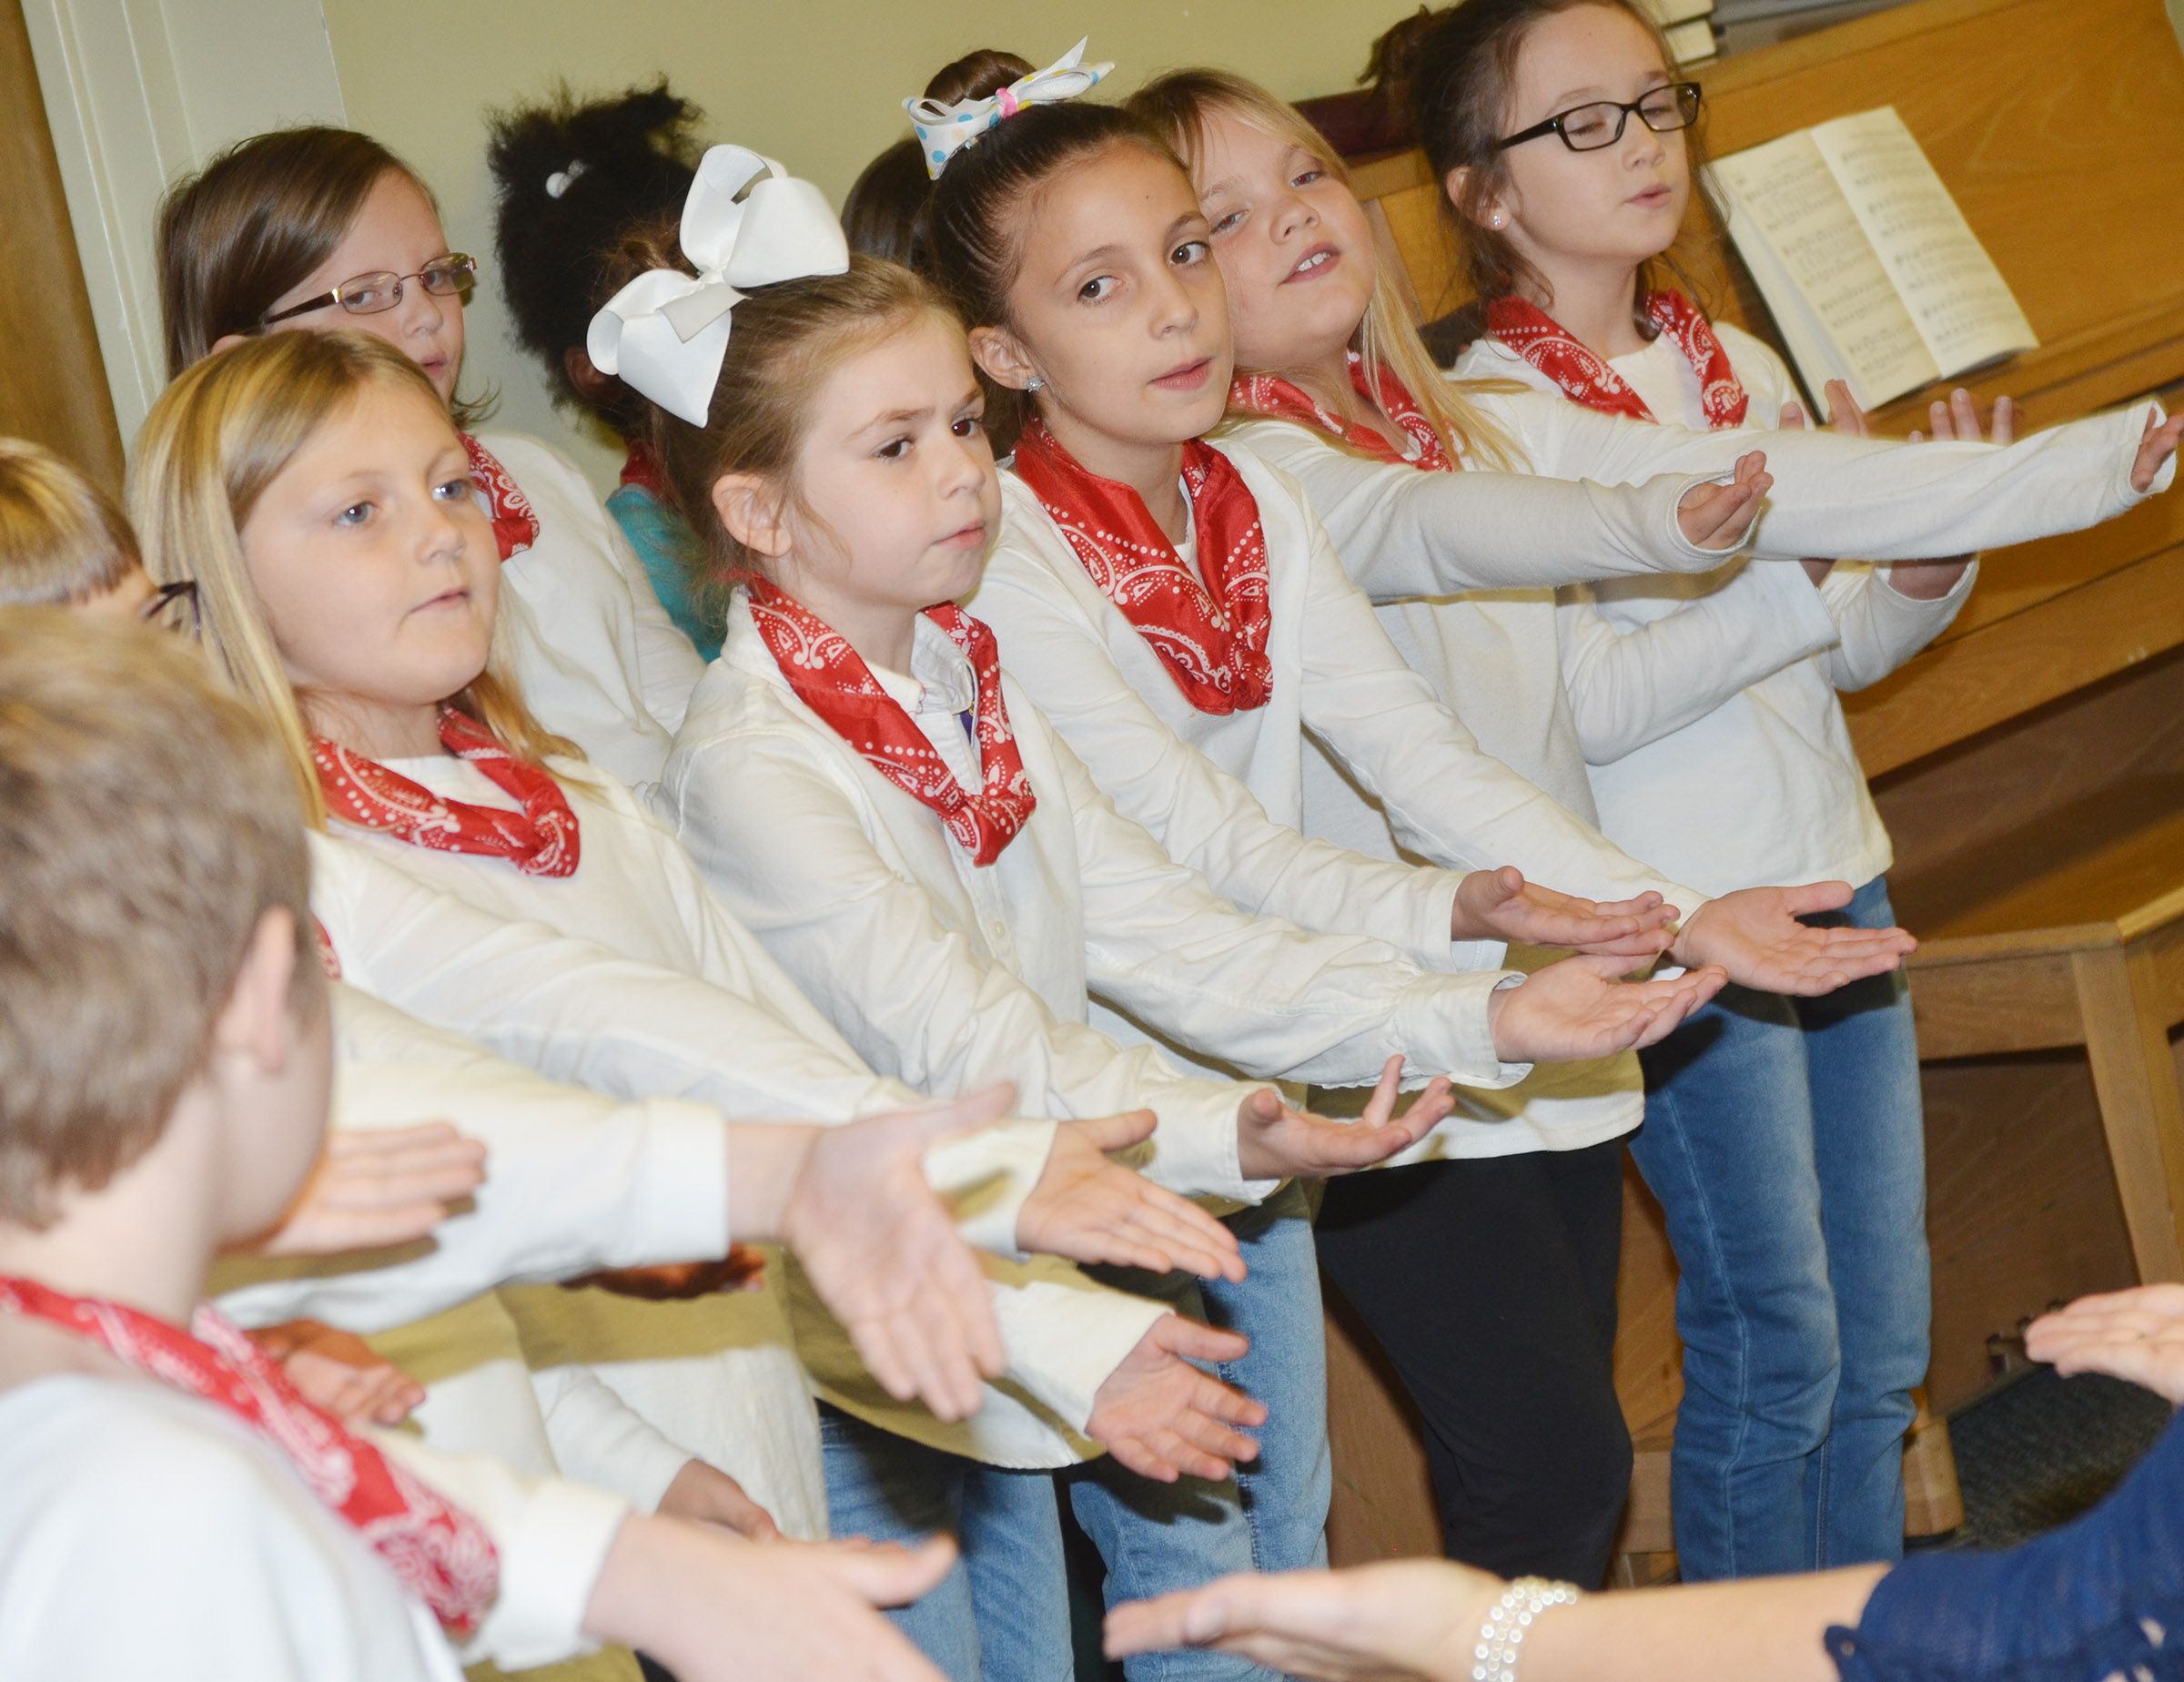 CES second-grade choir members, from left, Asia Singleton, Lainey Price, Lillian Martin, Addysen England Anna Keith sing.